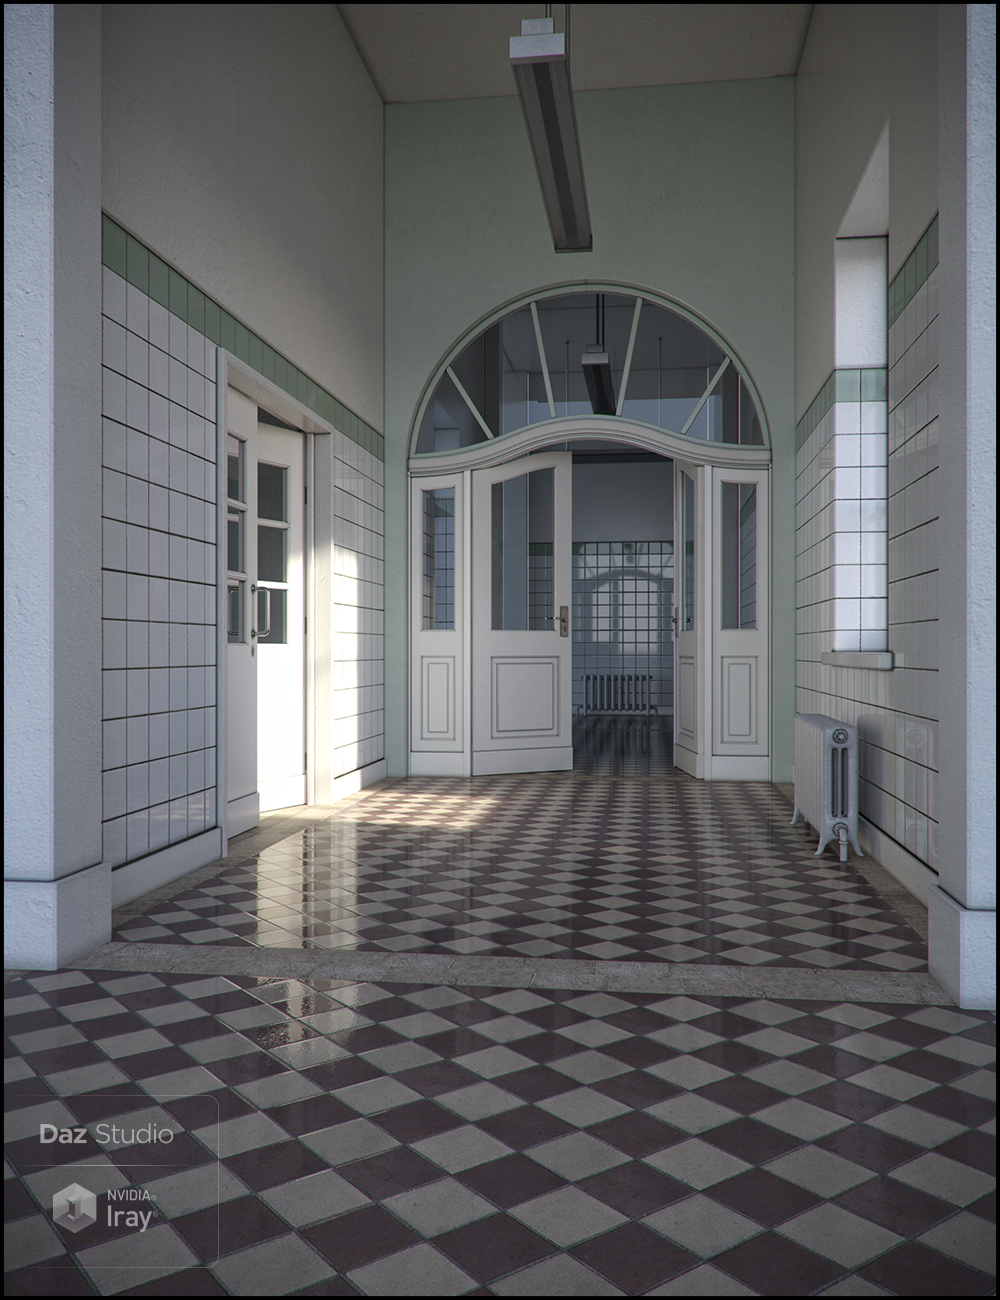 West Park Committed Iray Addon by: Jack Tomalin, 3D Models by Daz 3D